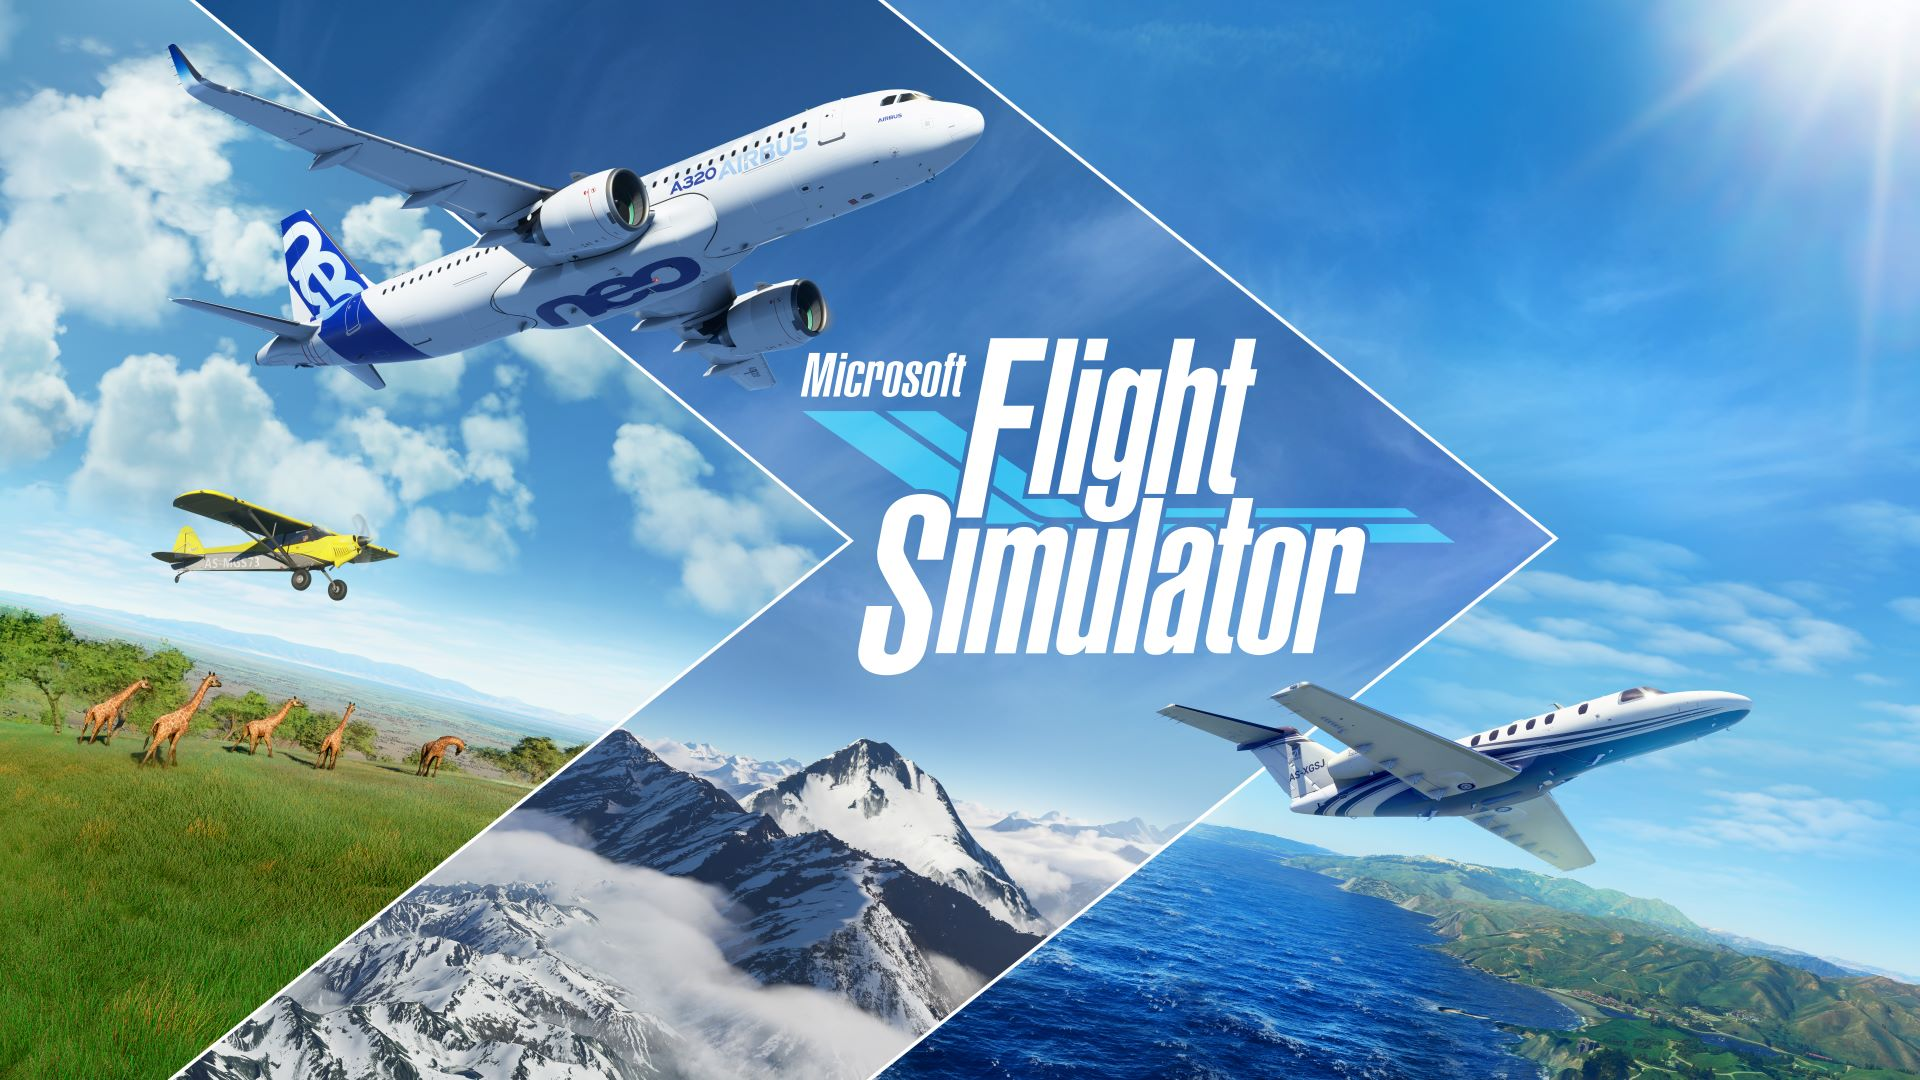 Microsoft Flight Simulator 4 - سی دی کی اشتراکی Microsoft Flight Simulator ( آنلاین )